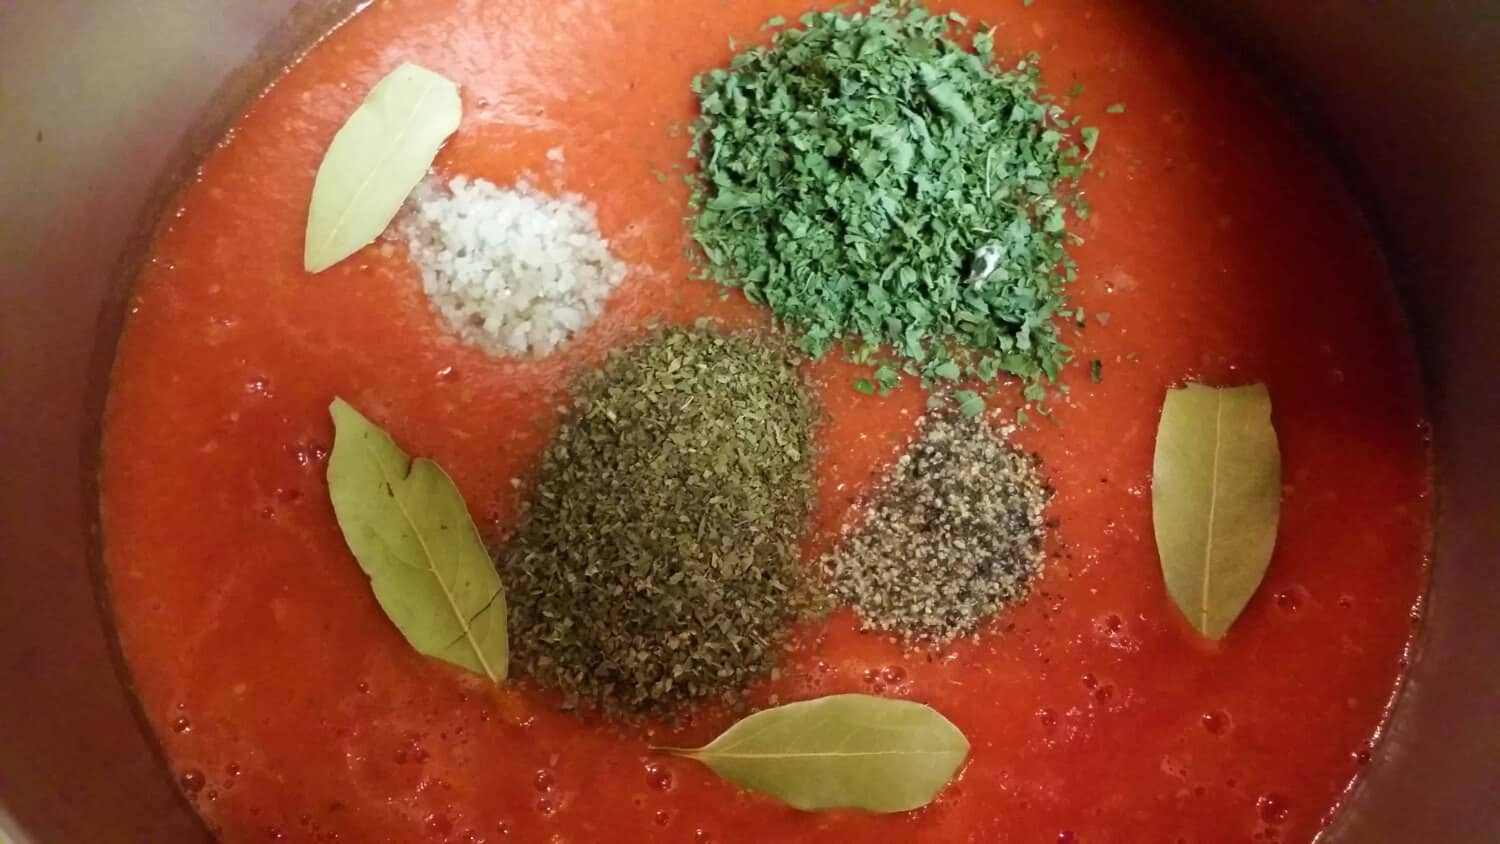 Adding the herbs and seasonings to the homemade pizza sauce